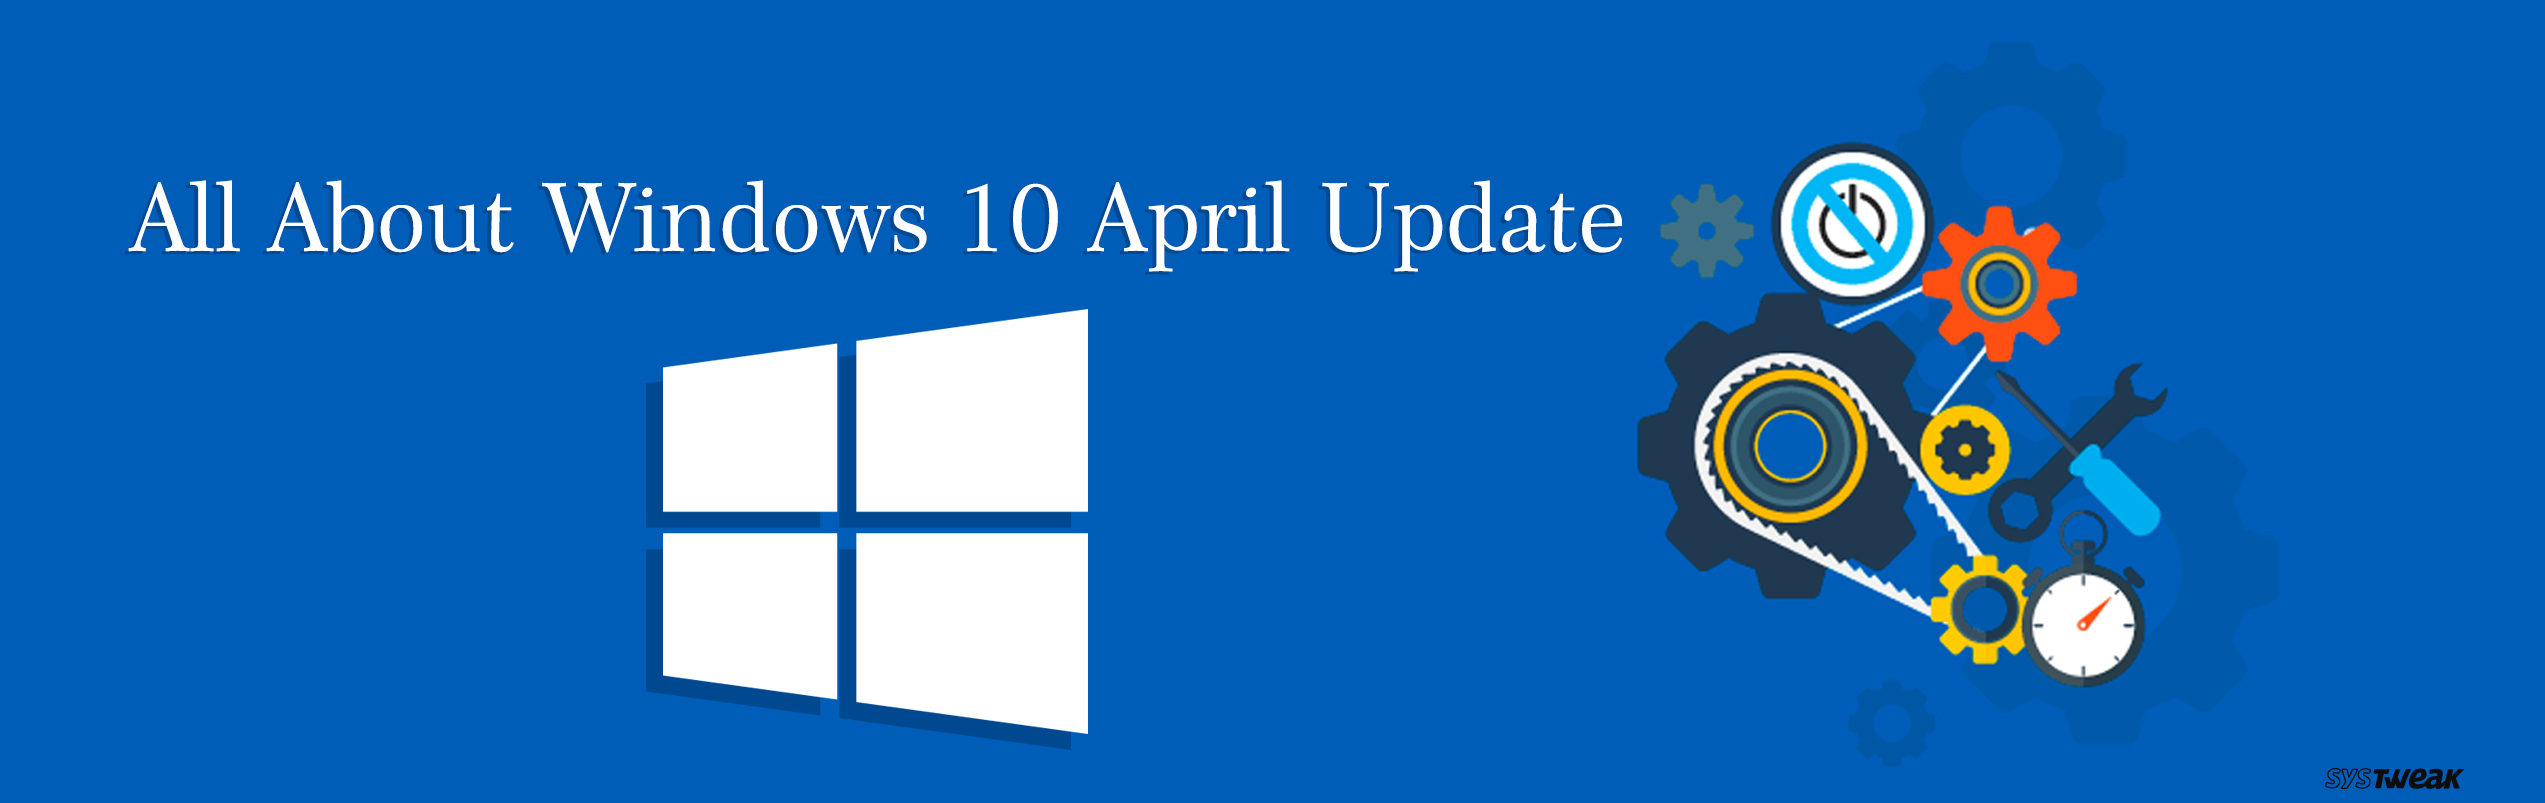 Long Awaited Windows 10 Update Is Finally Here!